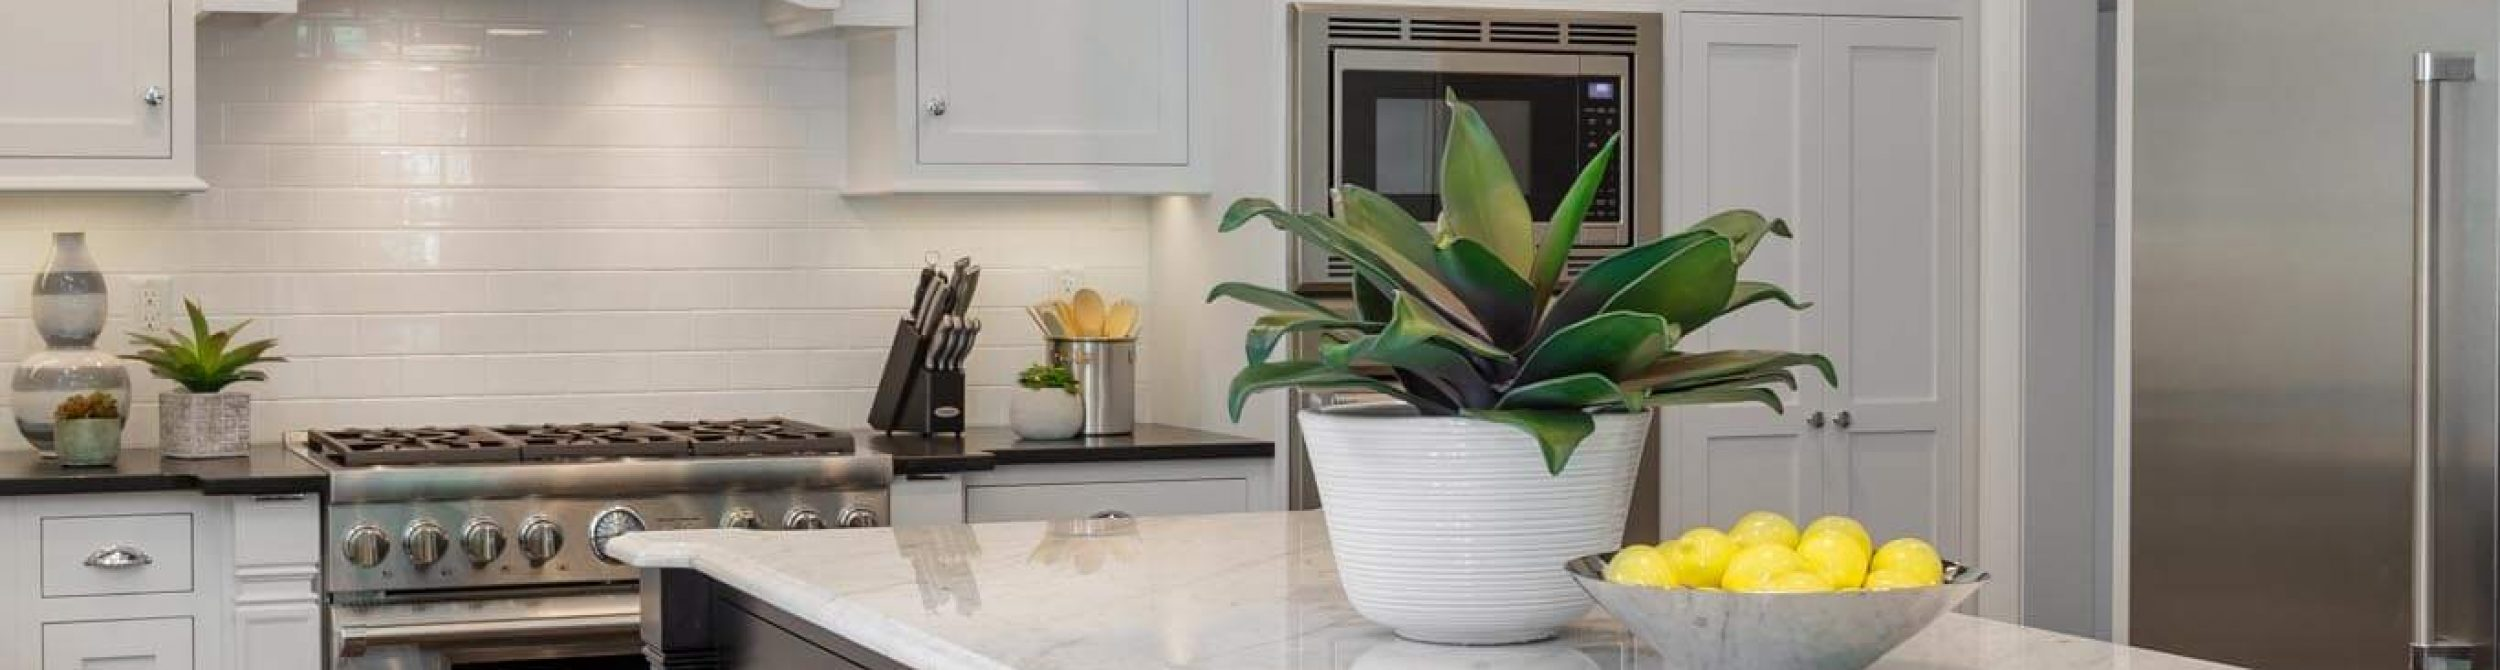 White kitchen cabinets with granite counter top